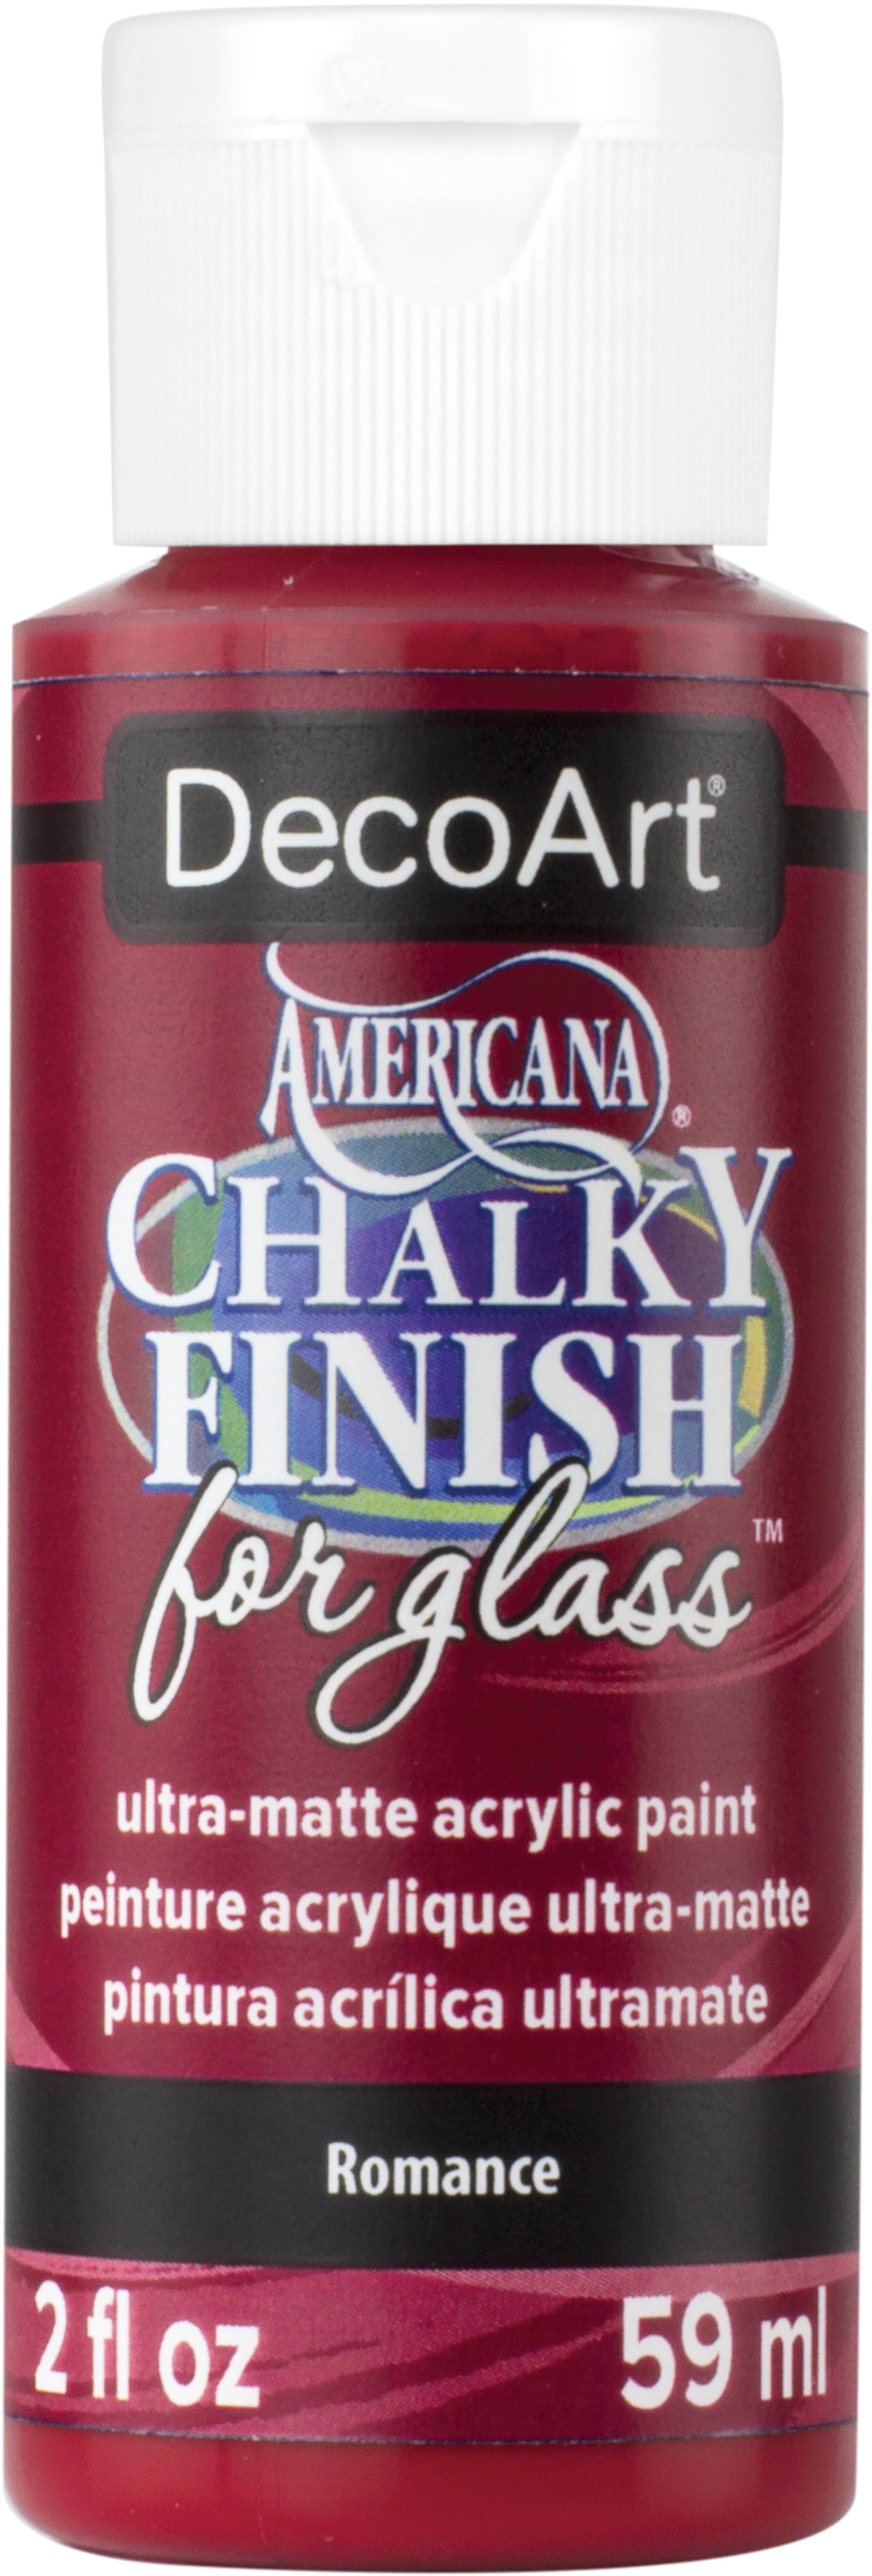 Americana Chalky Finish For Glass 2oz-Vintage